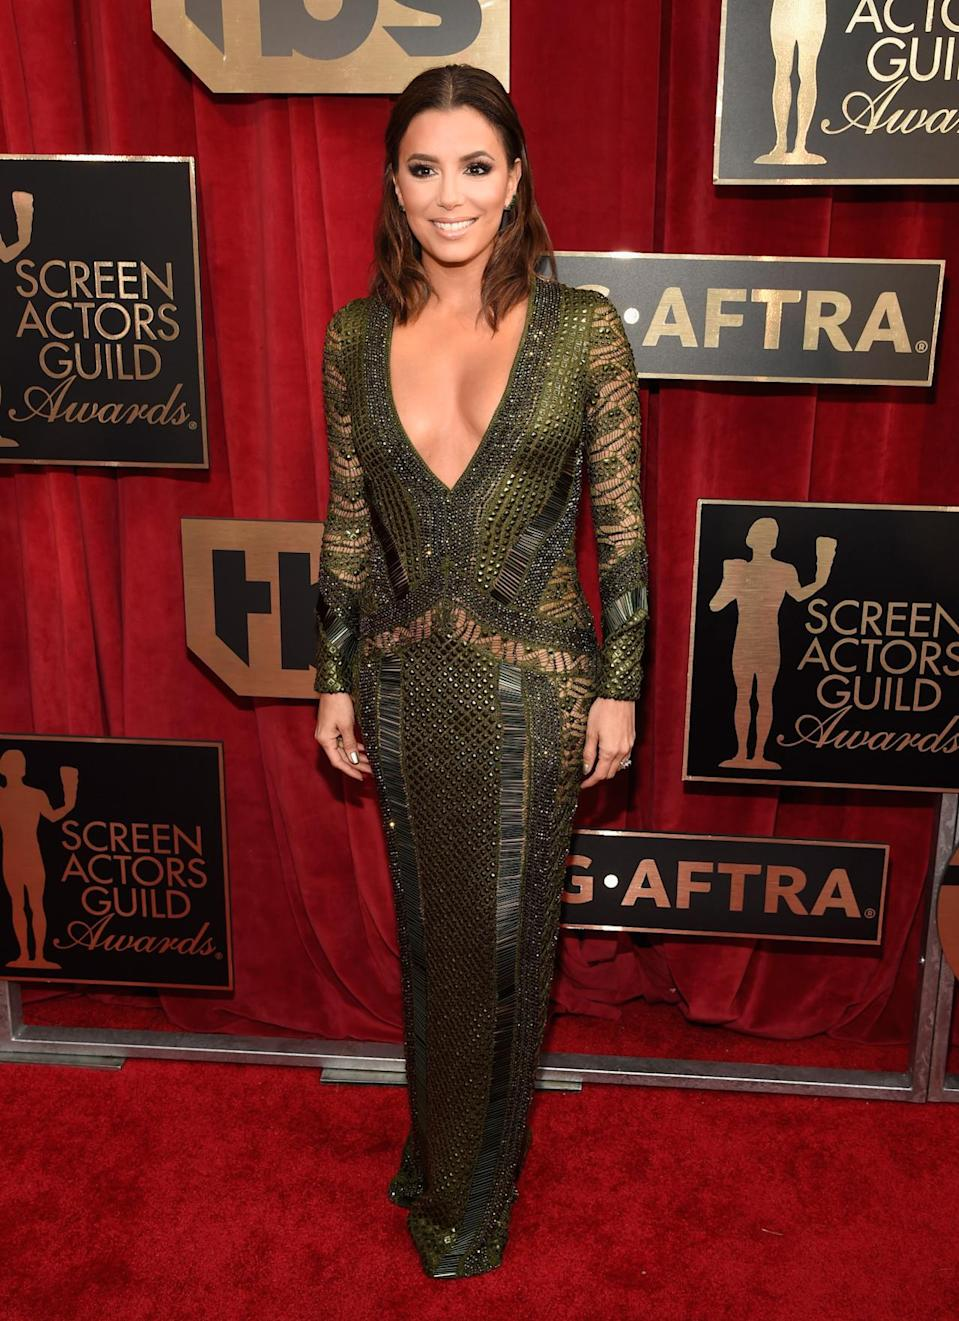 """<p>Eva Longoria channeled Jennifer Lopez on the red carpet in a revealing Julien MacDonald dress. The military green gown plunged in the front — and did the same in the back. She assumed that the designer's inspiration for the stunning design and her overall look for the night was to """"show some skin,"""" and the <i>Telenovela </i>star was probably right. <i>Photo: Getty Images</i></p>"""